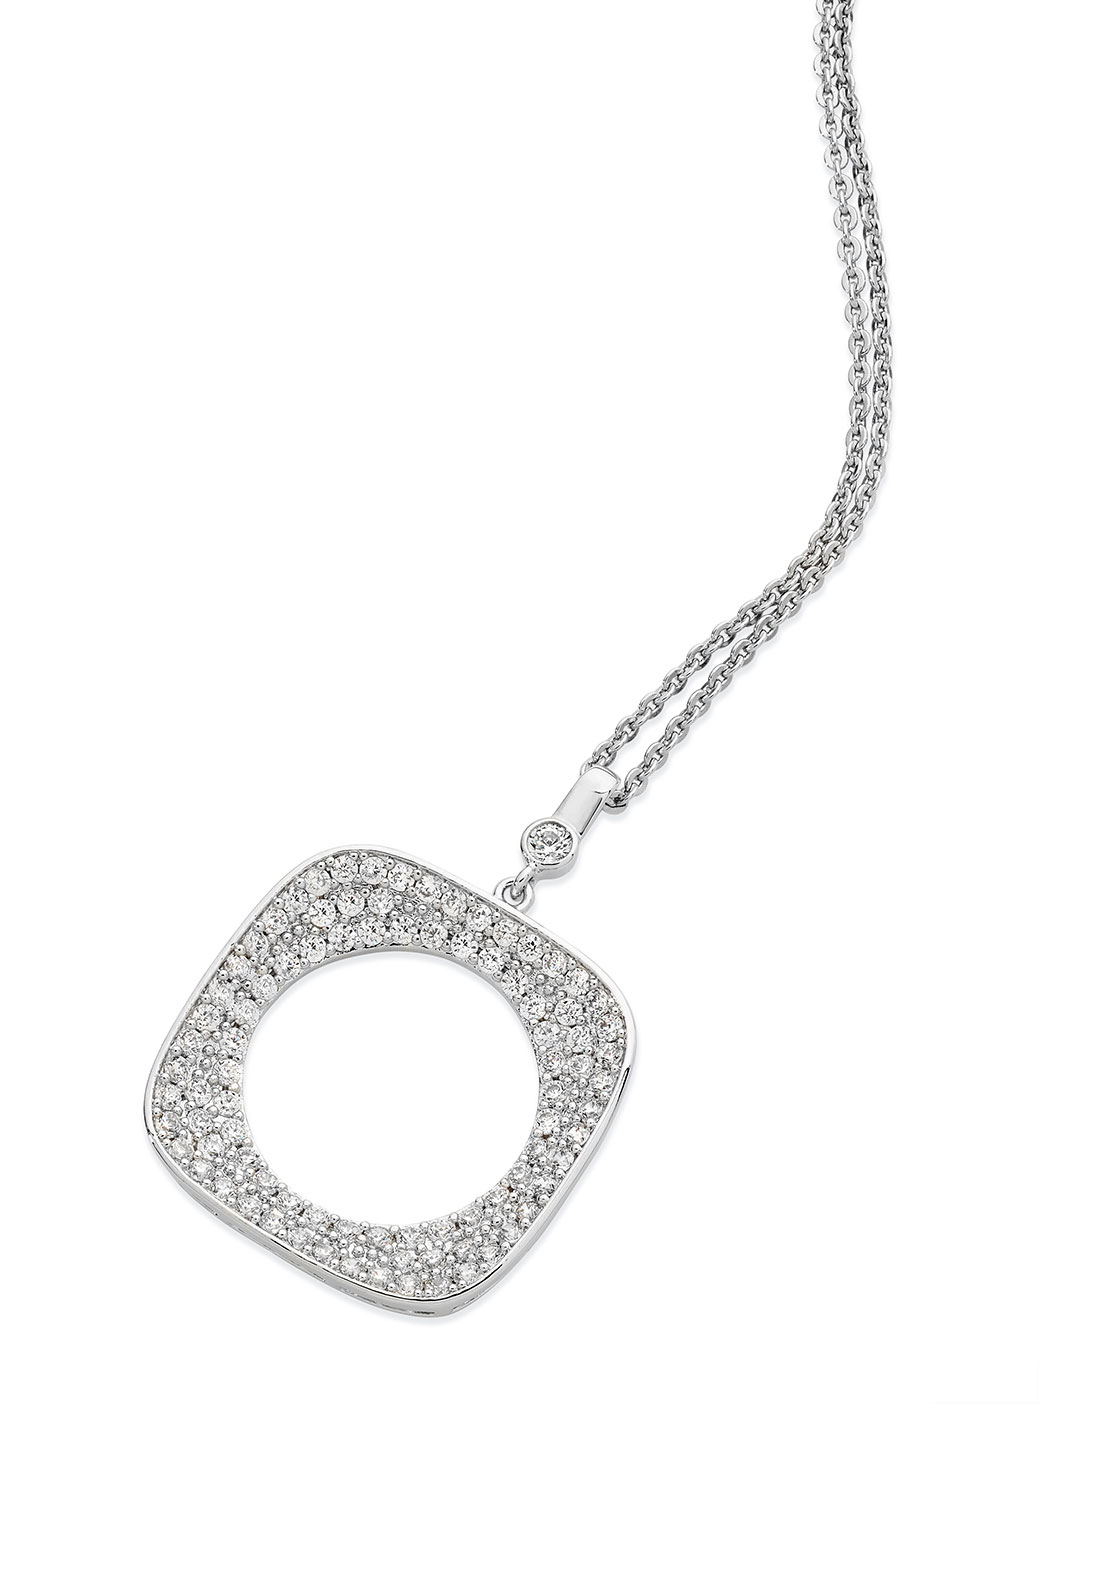 Tipperary Crystal Square Pave Moon Necklace